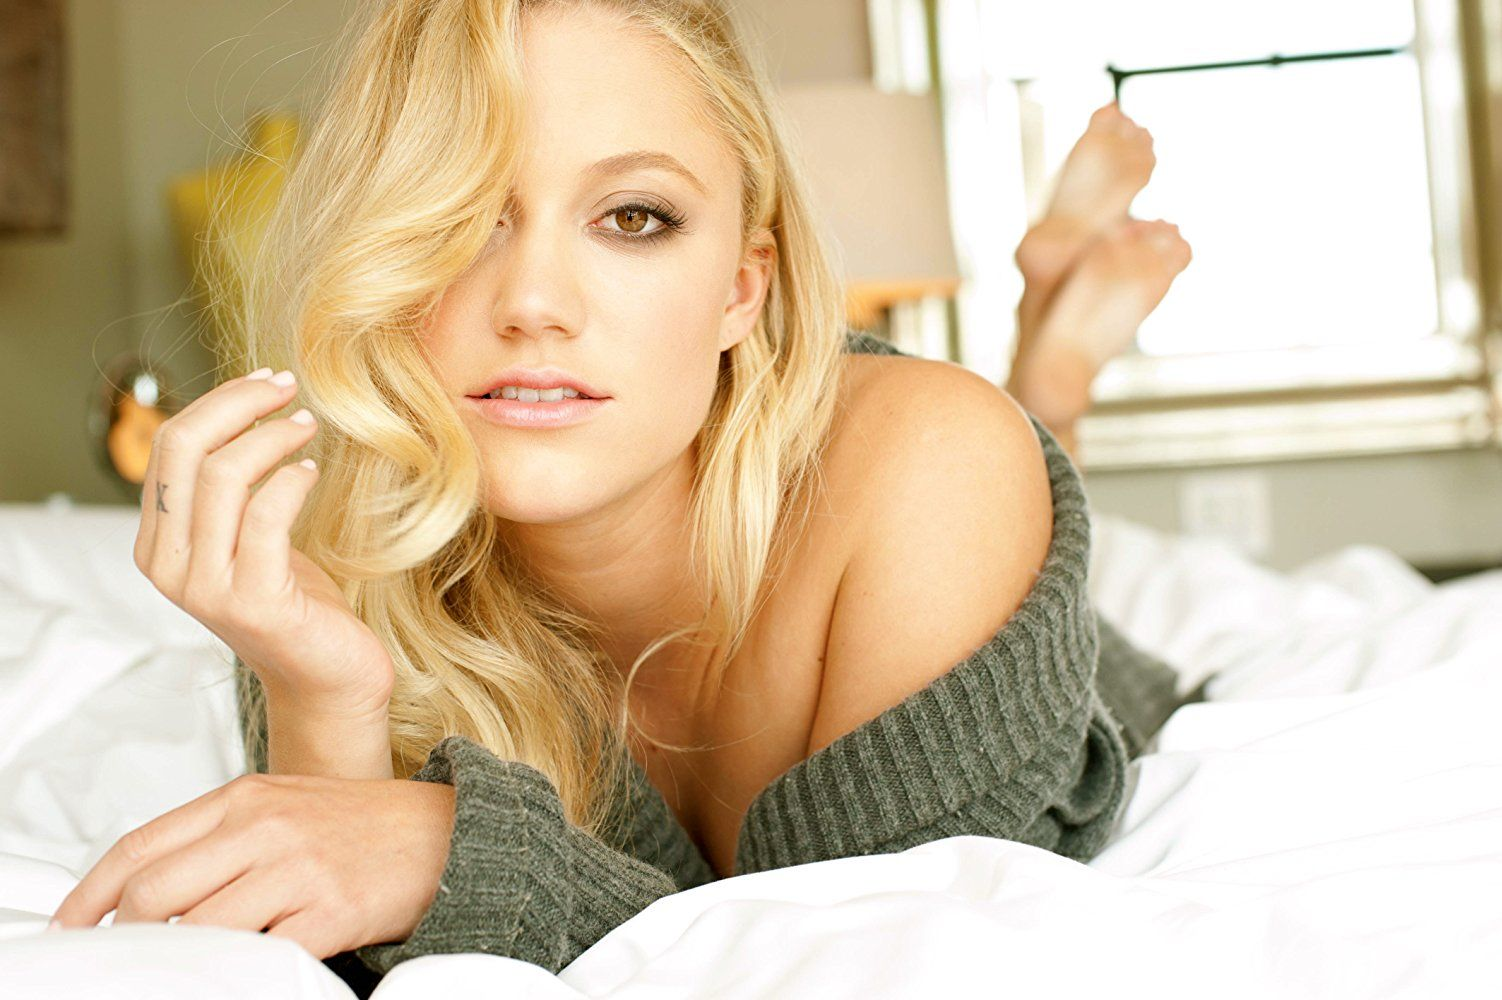 Maika Monroe Nude Photos and Videos | #TheFappening